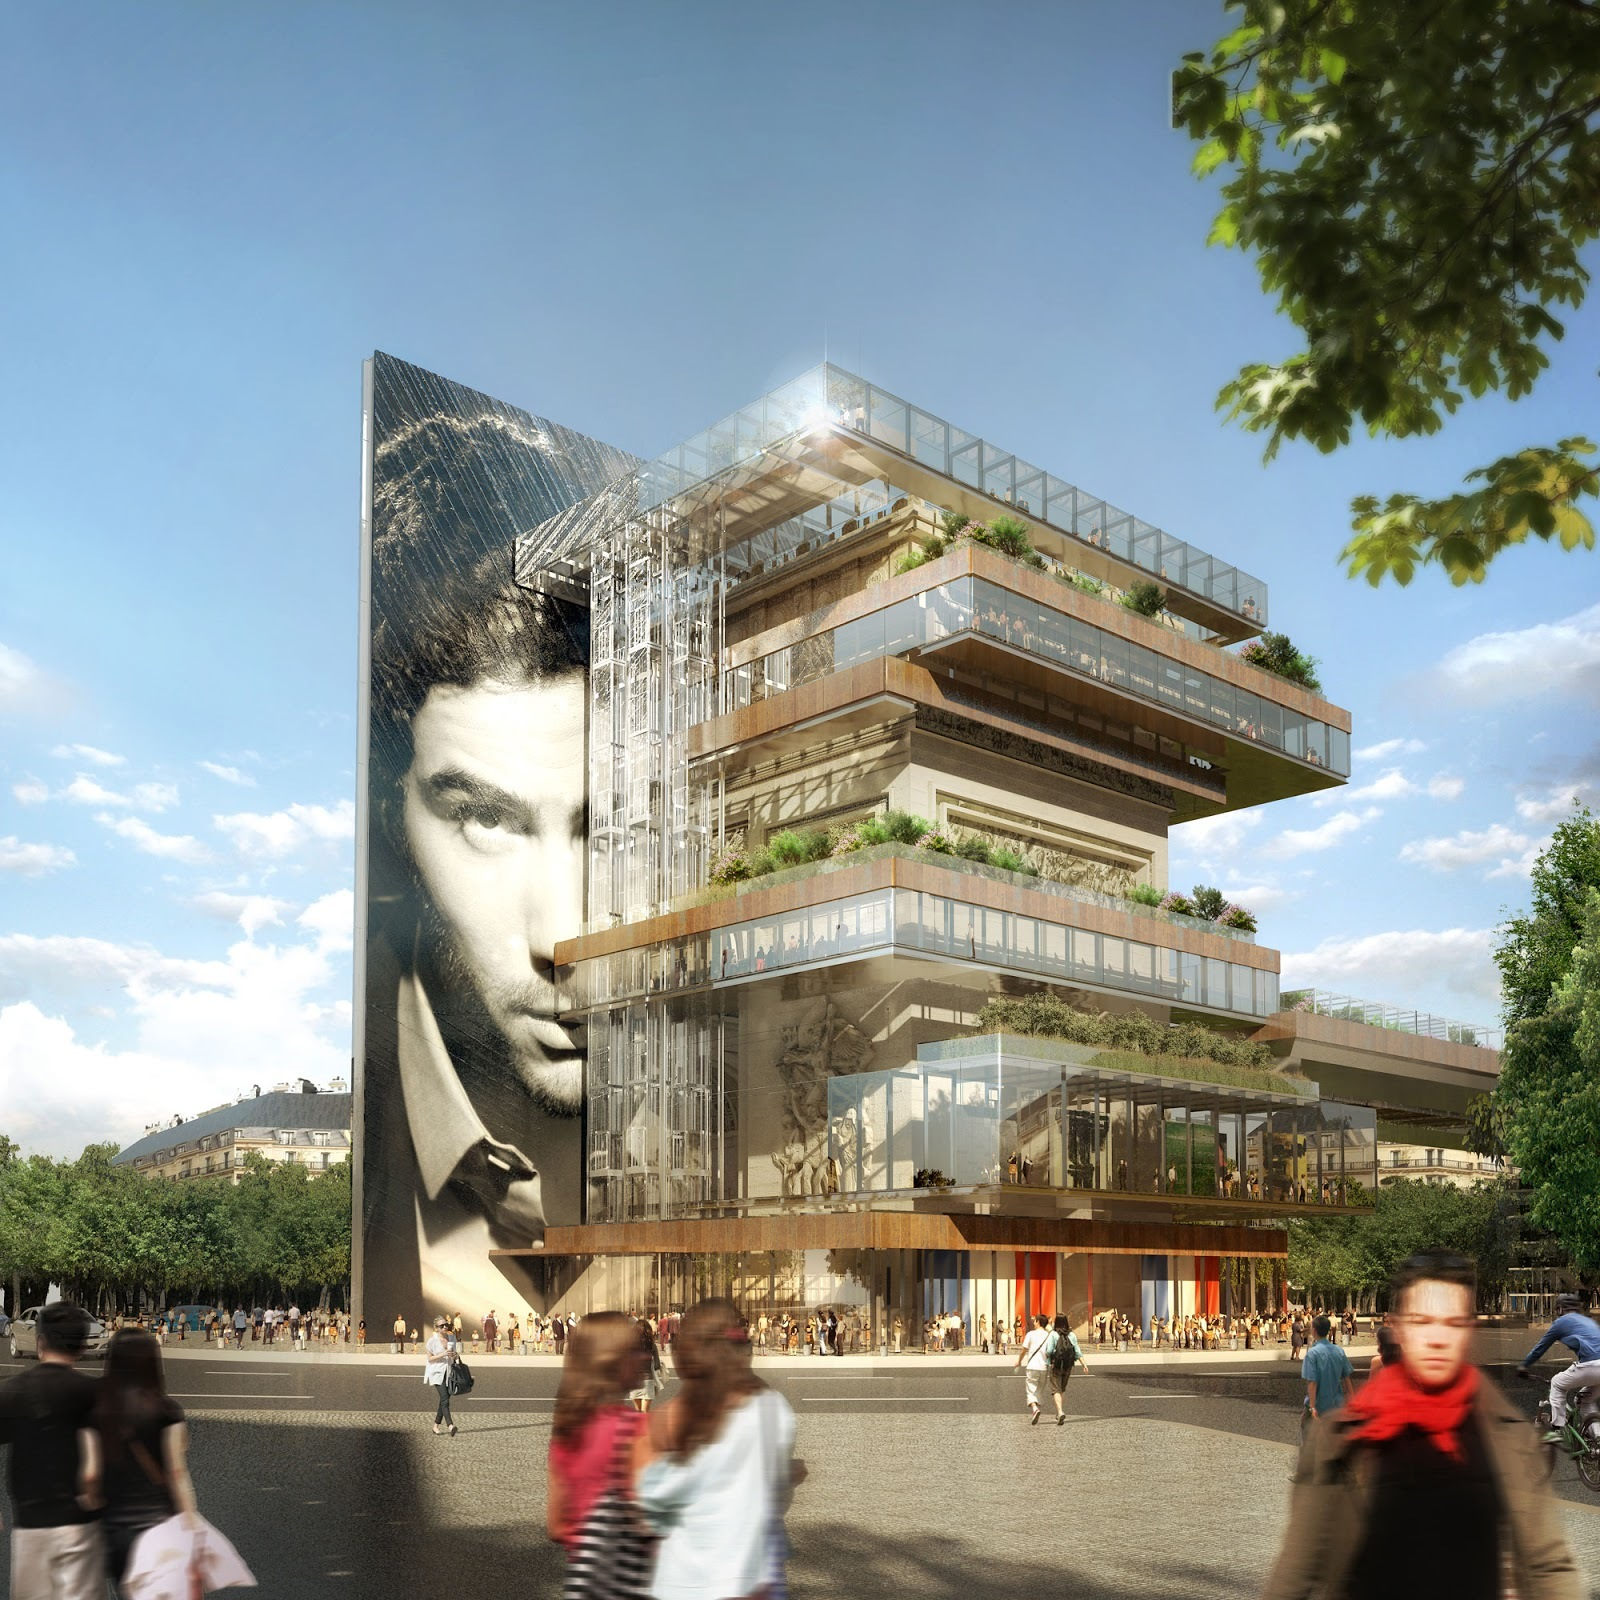 This Speculative Project Imagines A Mixed-Use Building Wrapped Around the Arc de Triomphe